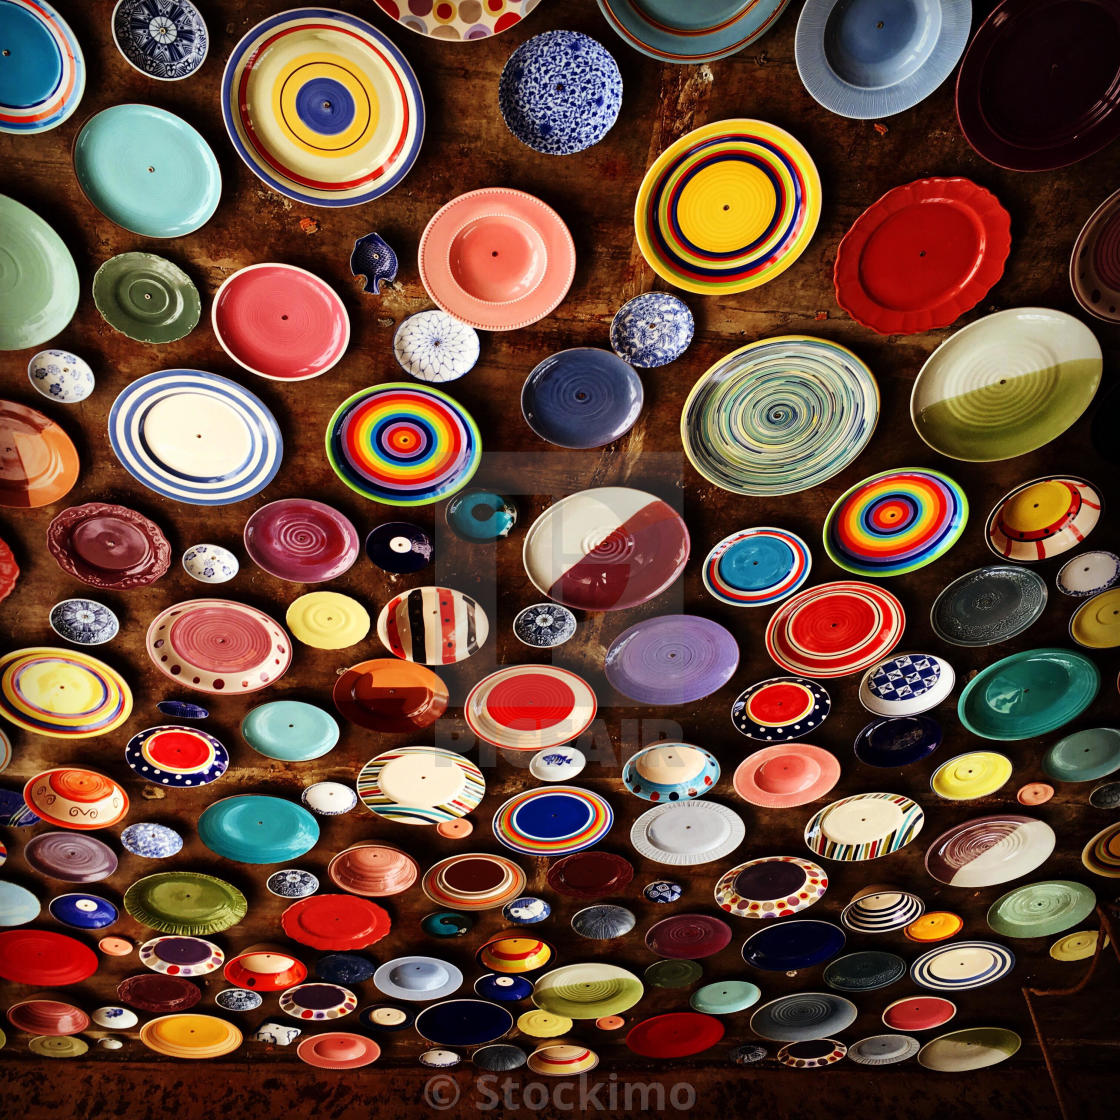 """Ceiling decorated with variety designs of beautiful dishes"" stock image"